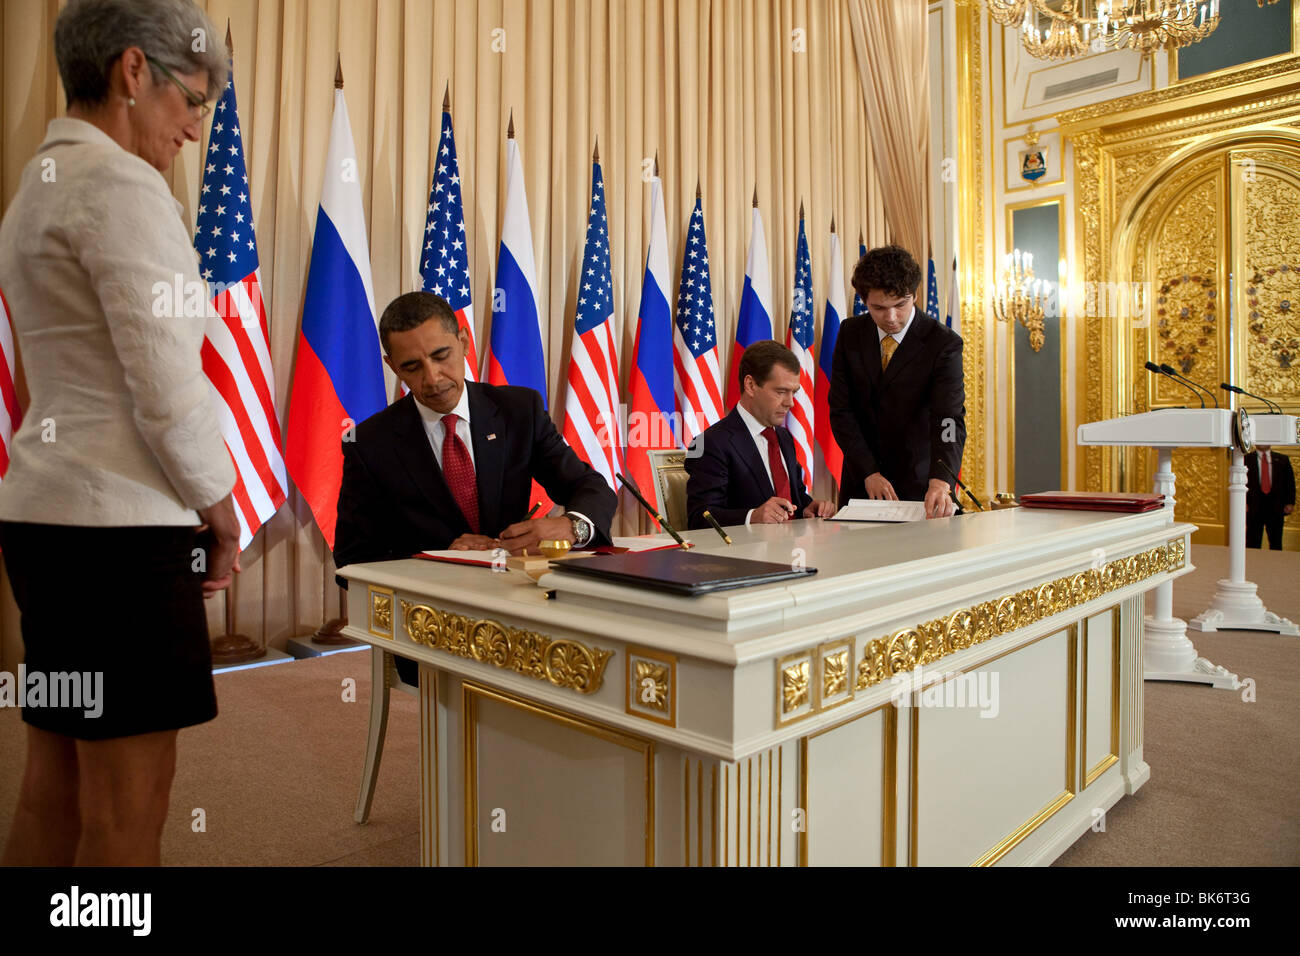 President Barack Obama and Russian President Dmitry Medvedev sign a preliminary agreement to reduce nuclear arsenals. - Stock Image